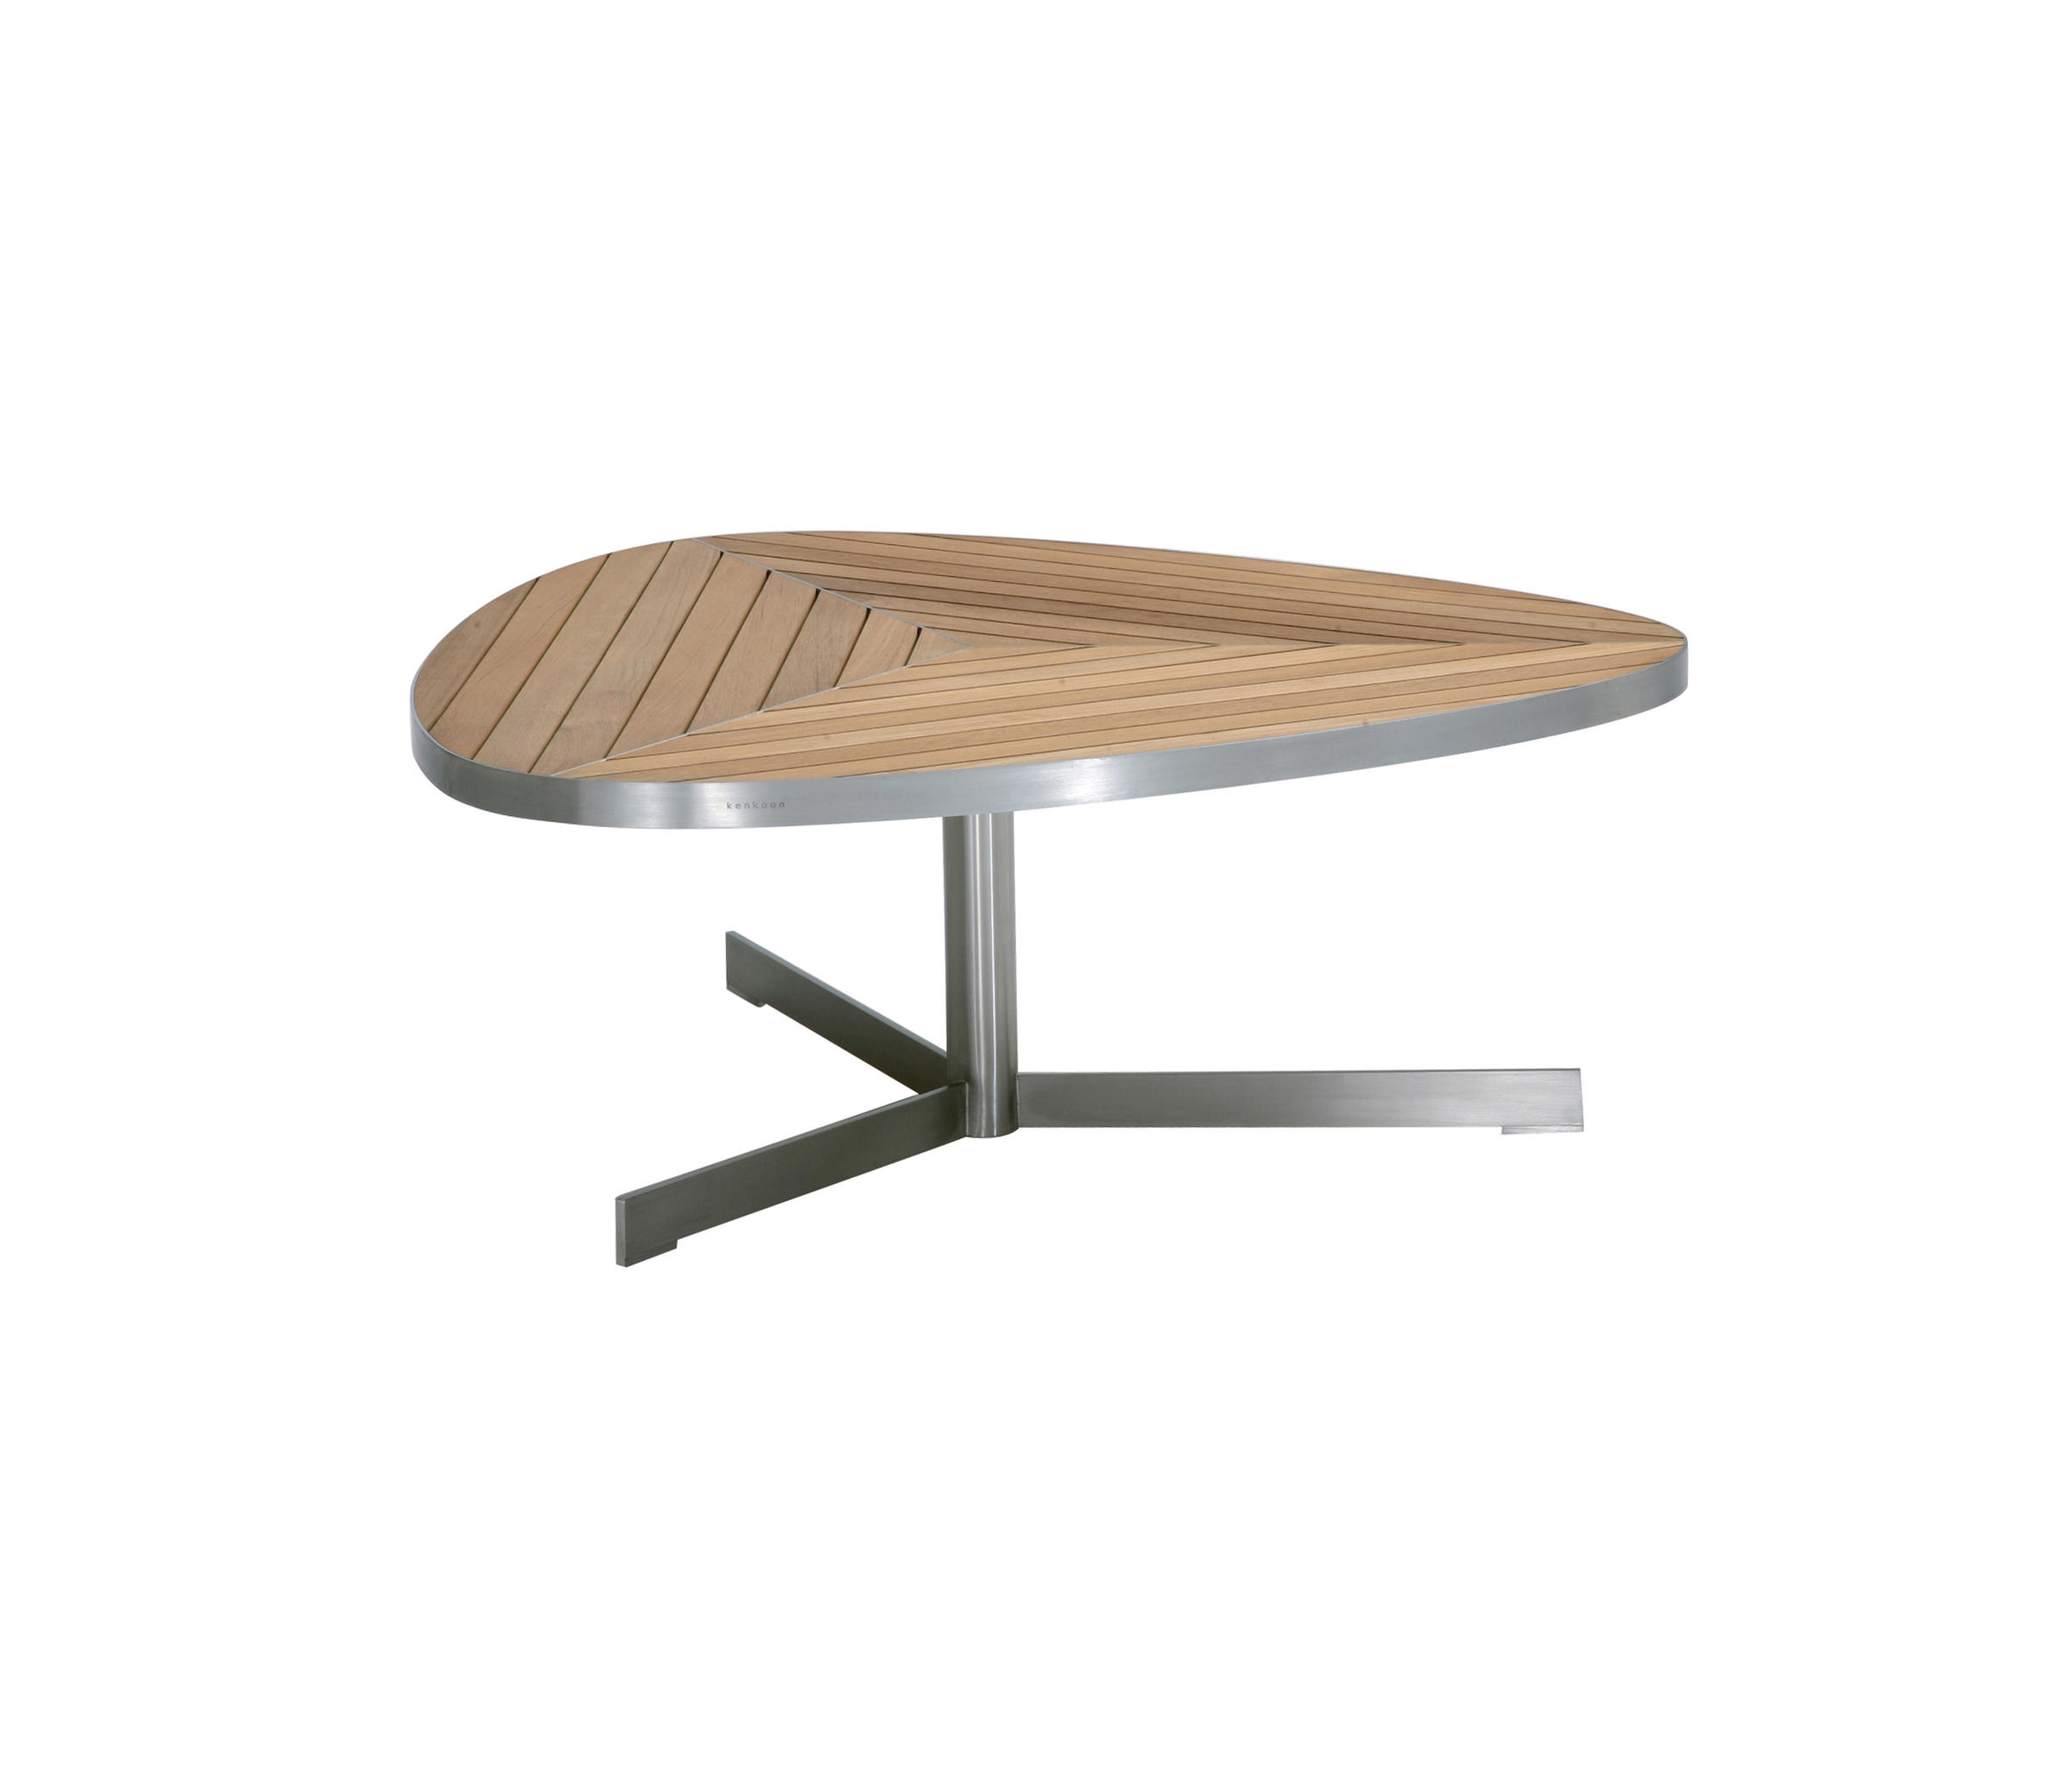 KURF TRIANGLE COFFEE TABLE Side tables from Kenkoon